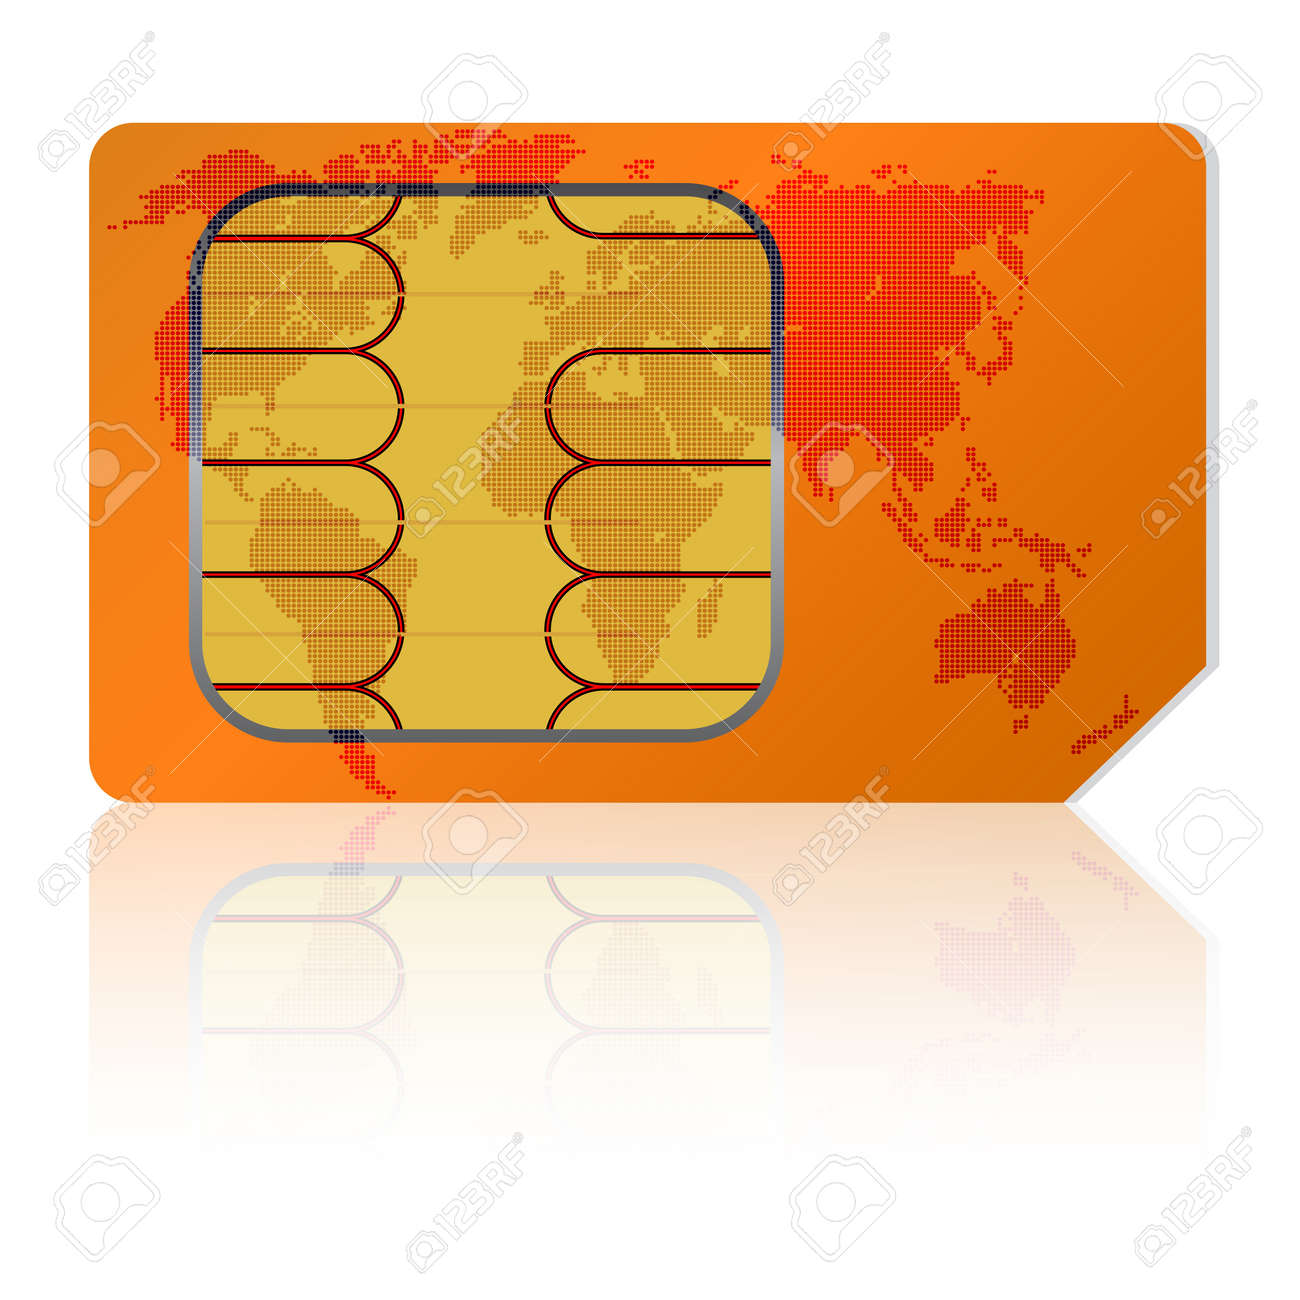 Sim card with a map of the world. Vector illustration. Stock Vector - 11299060